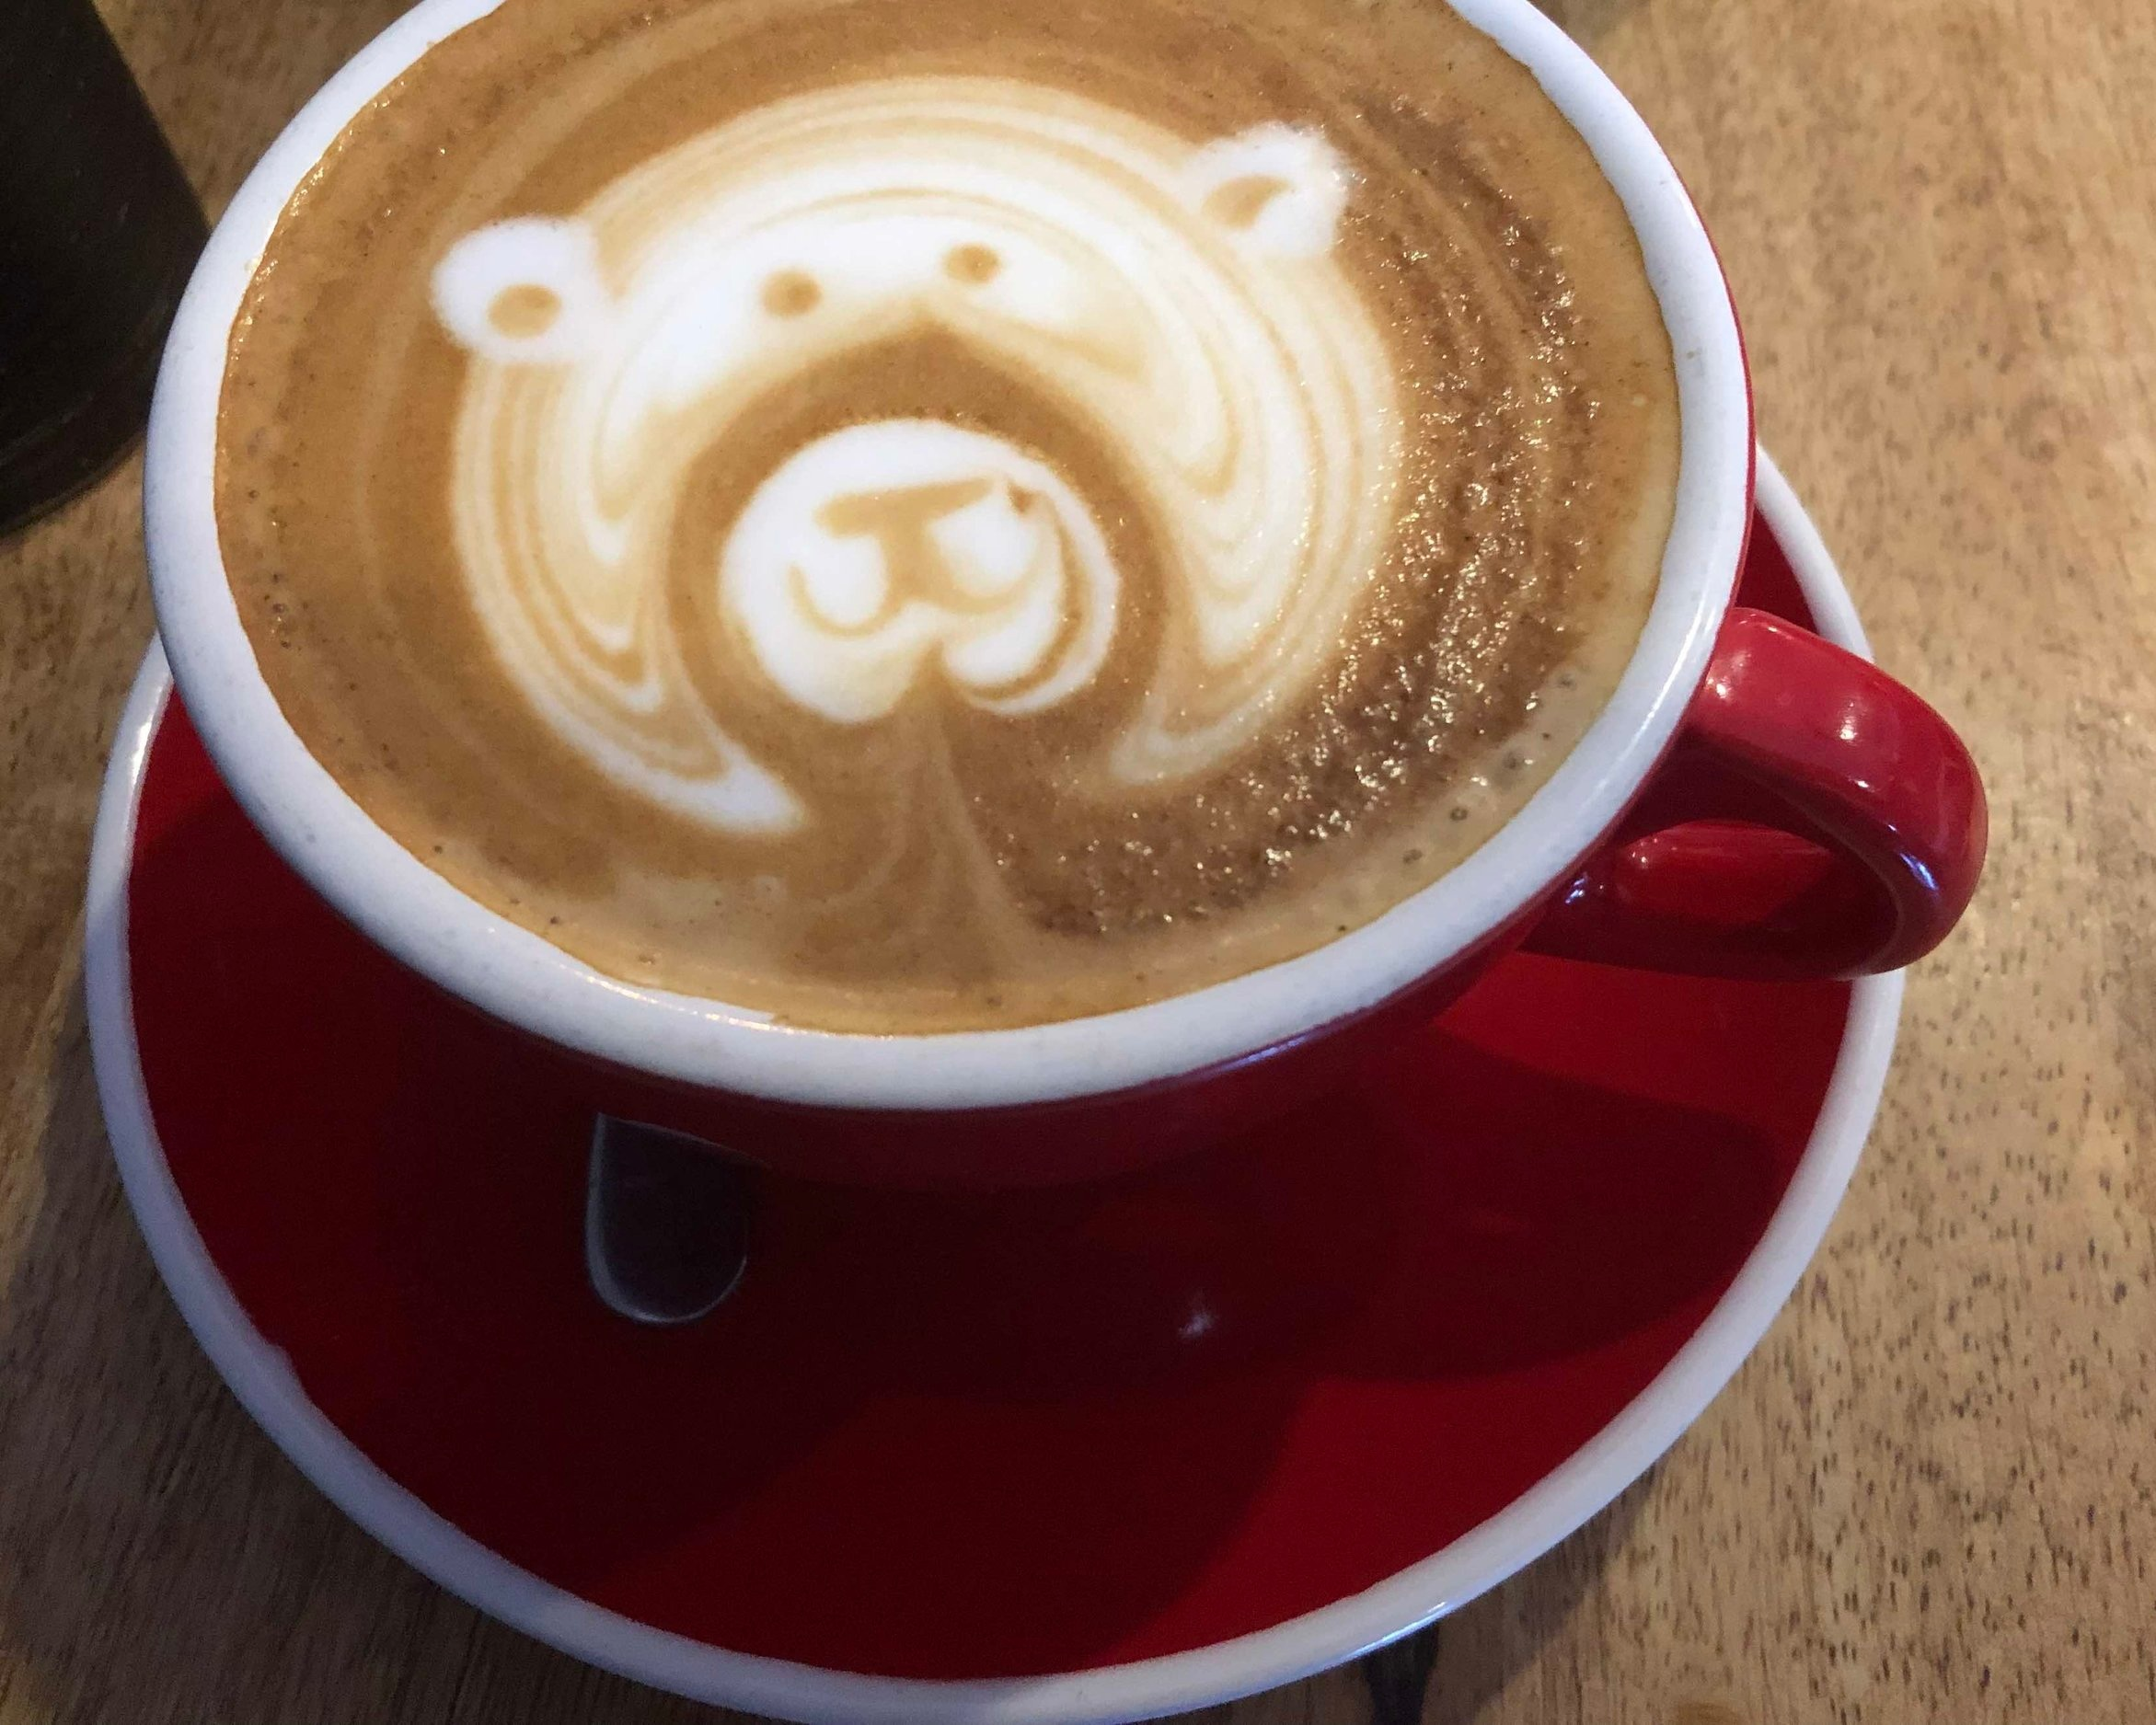 Coffee Art at 7tyone Cafe and Coffee Bar